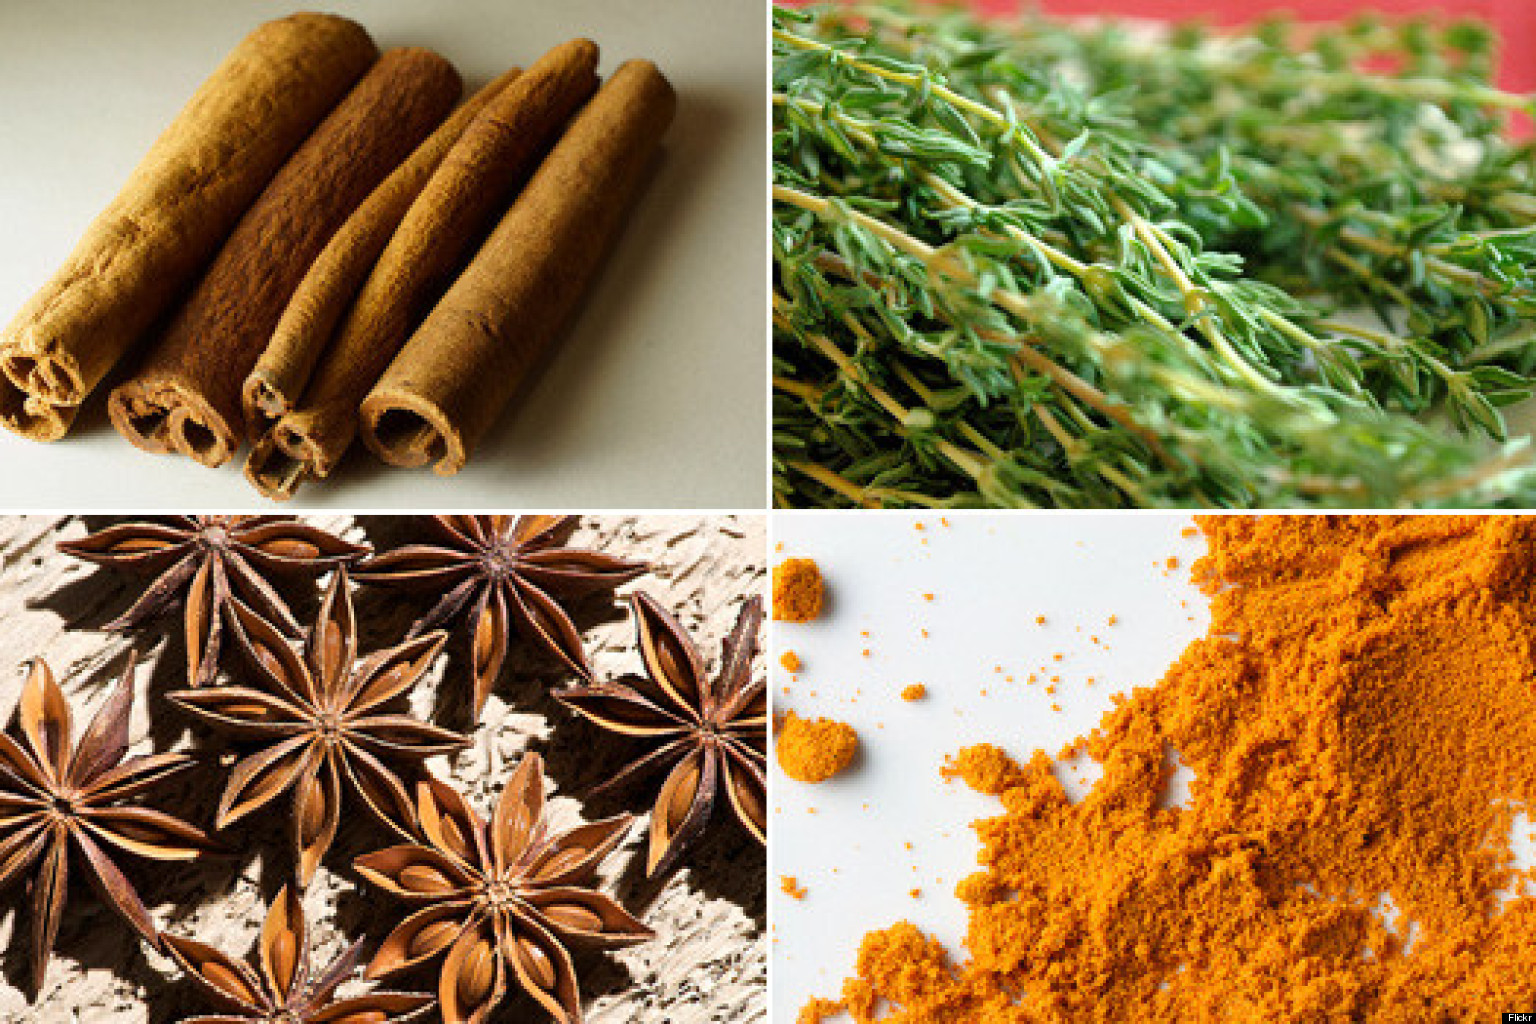 7 Top Healing Herbs And Spices